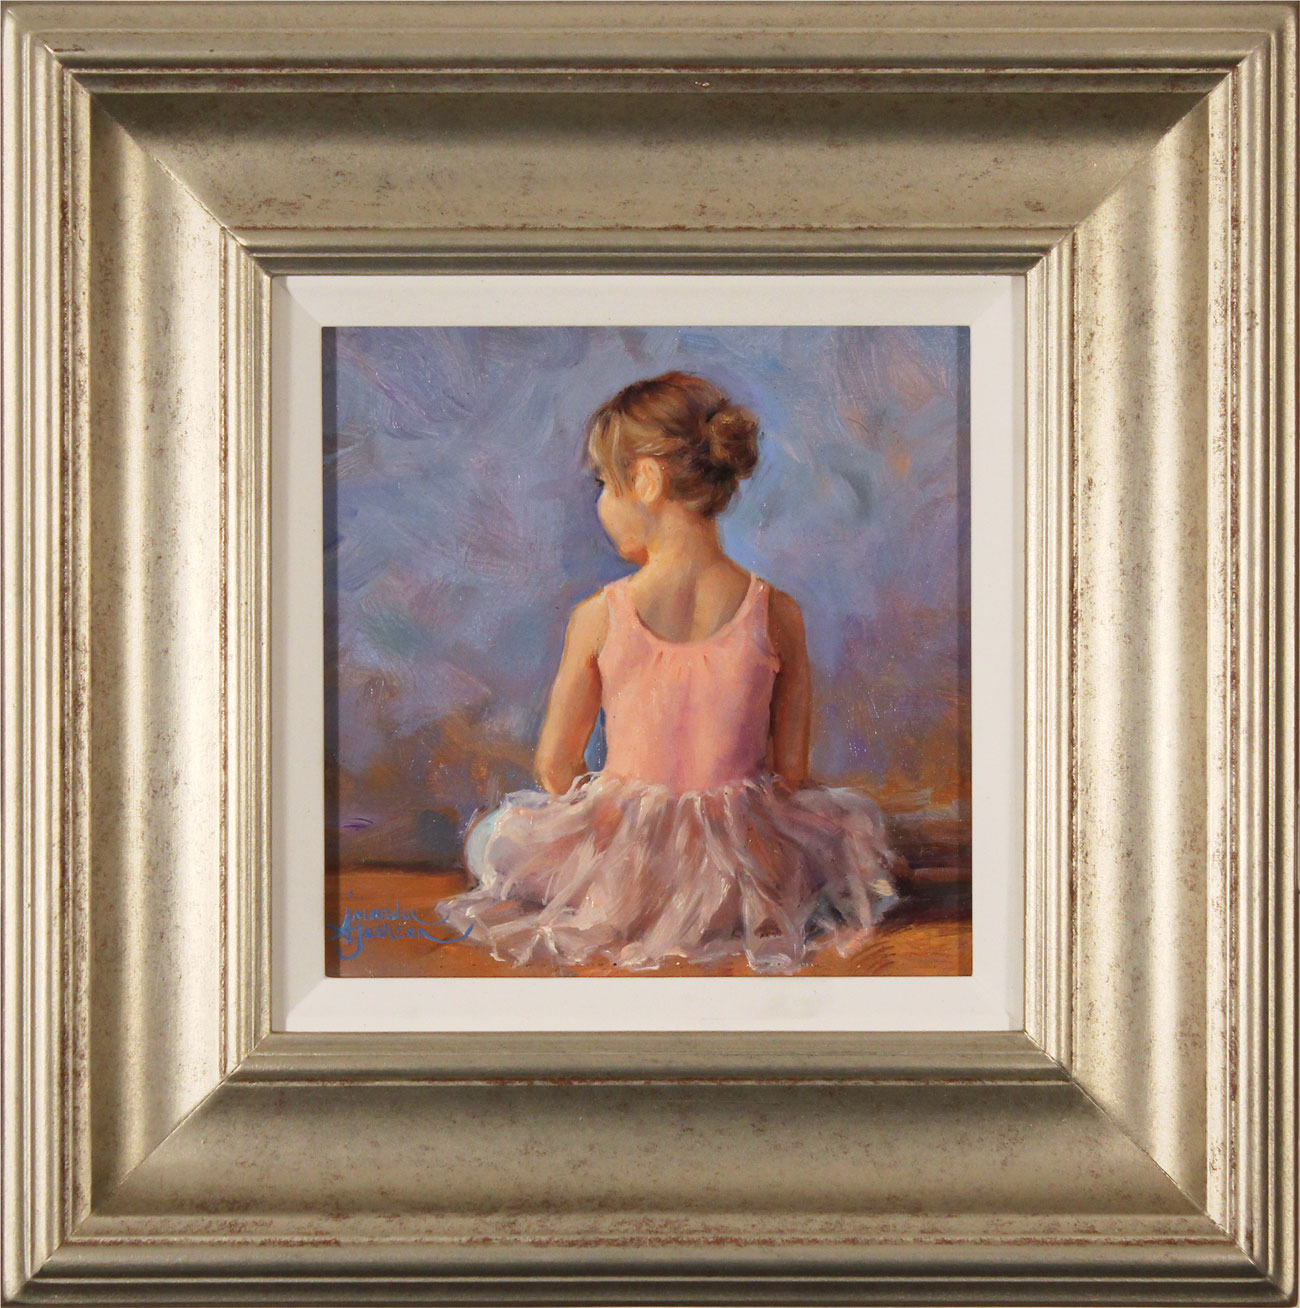 Amanda Jackson, Original oil painting on panel, Sitting Pretty Click to enlarge